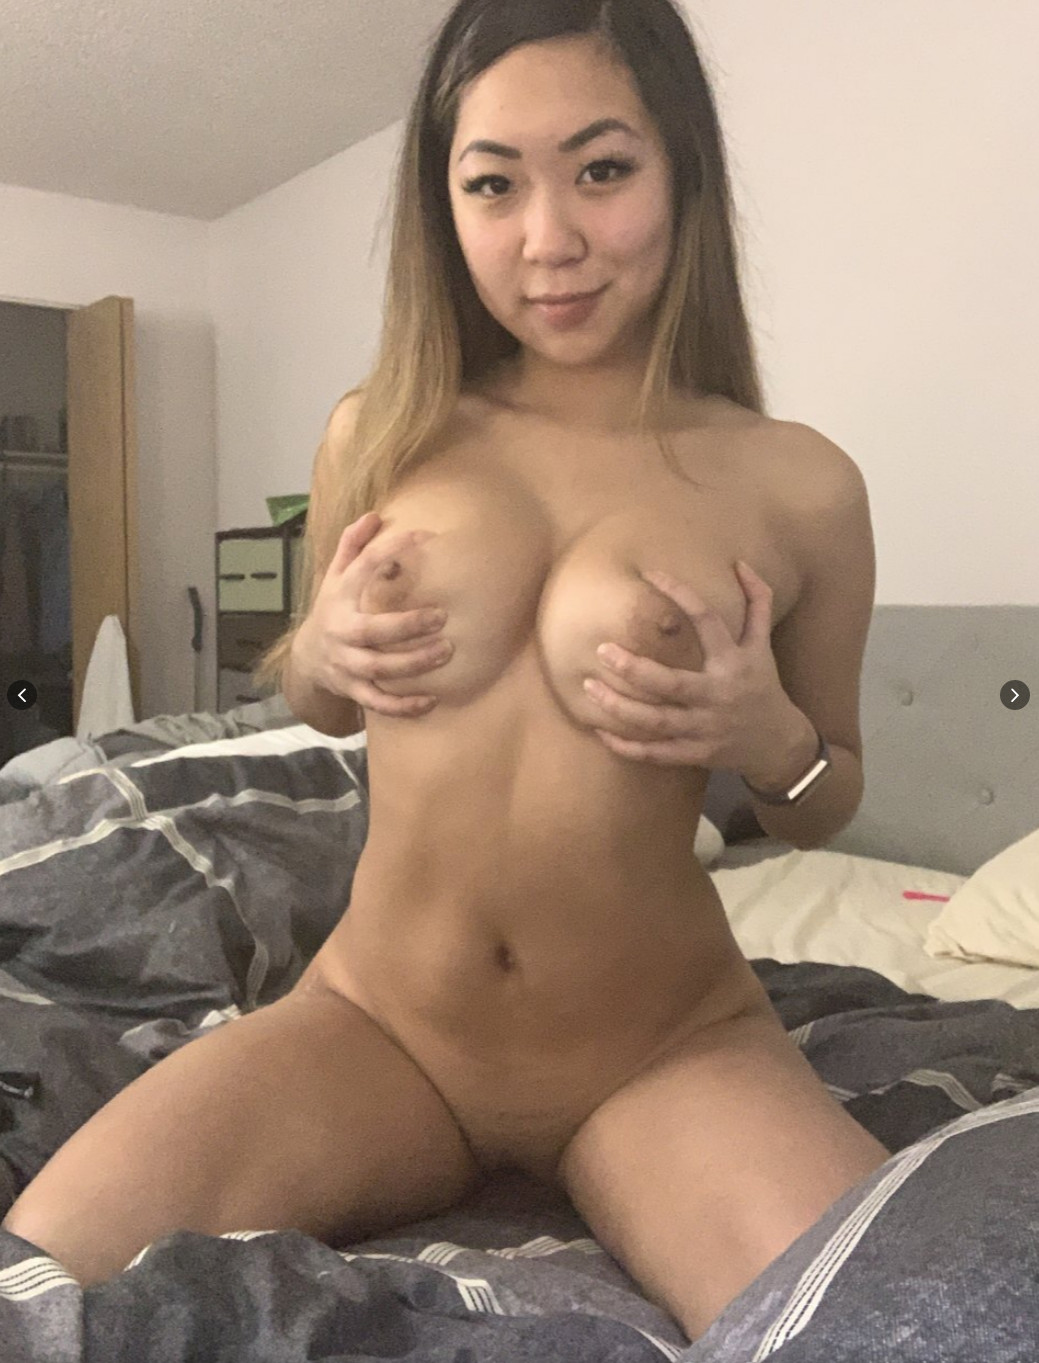 Ashley Aoki 0508 - onlyfans - Megapack